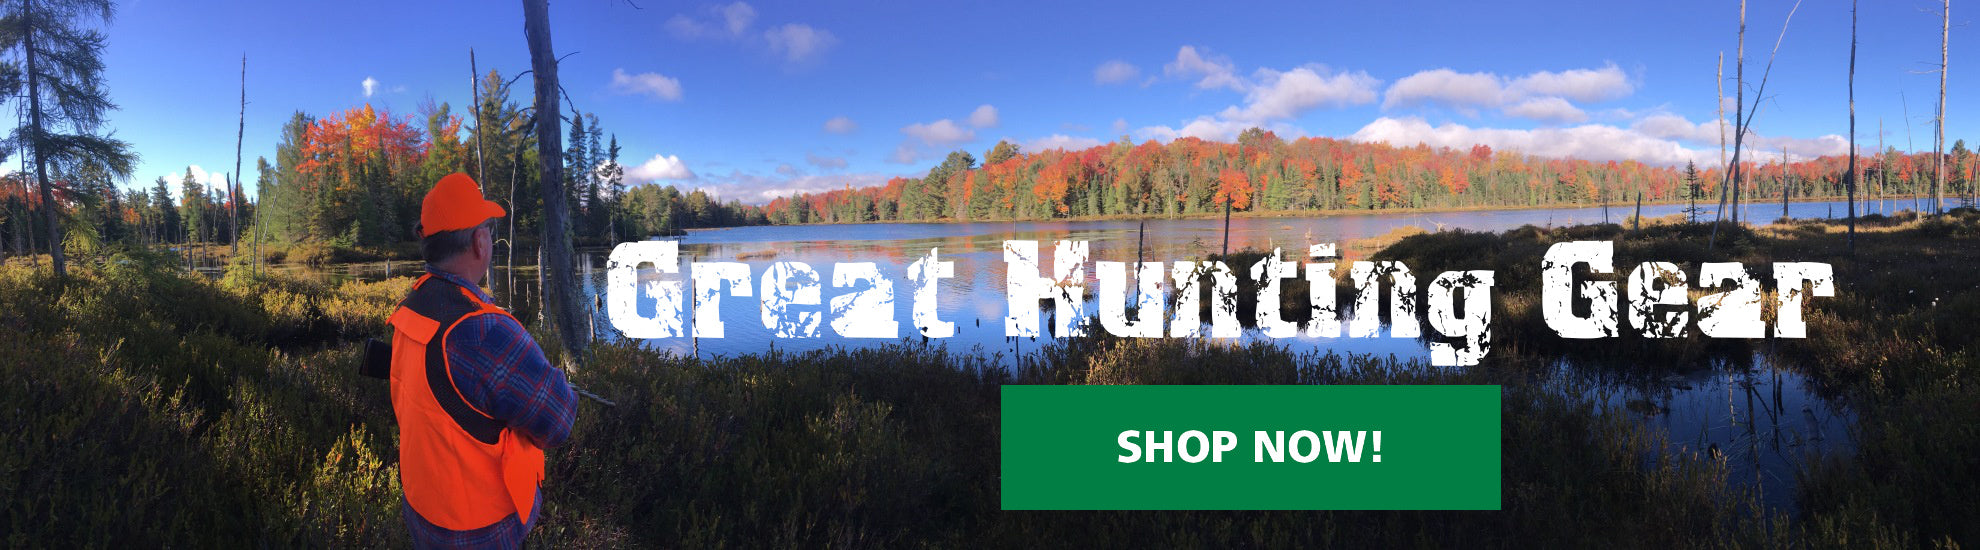 Shop for top quality hunting gear. Mens hunting gear, womens hunting gear and kids hunting gear.